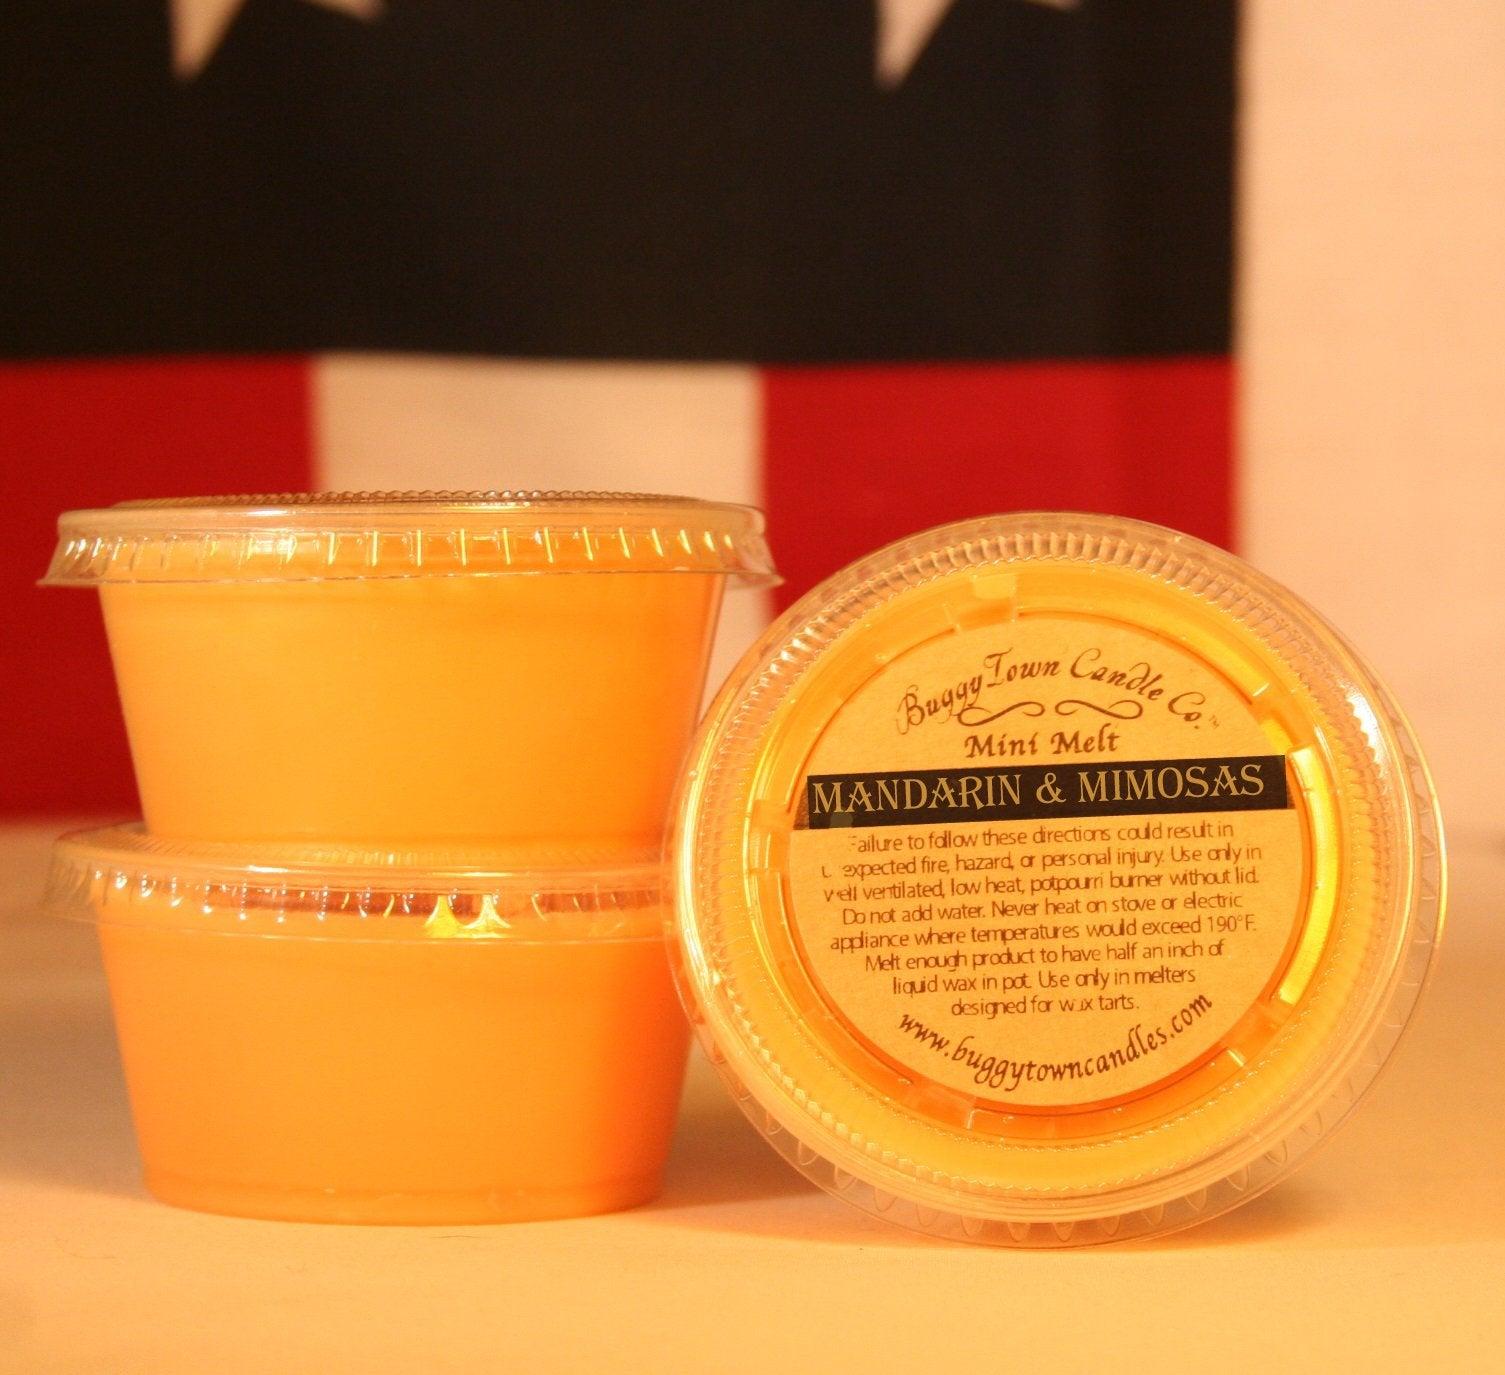 Mandarin & mimosas Candles